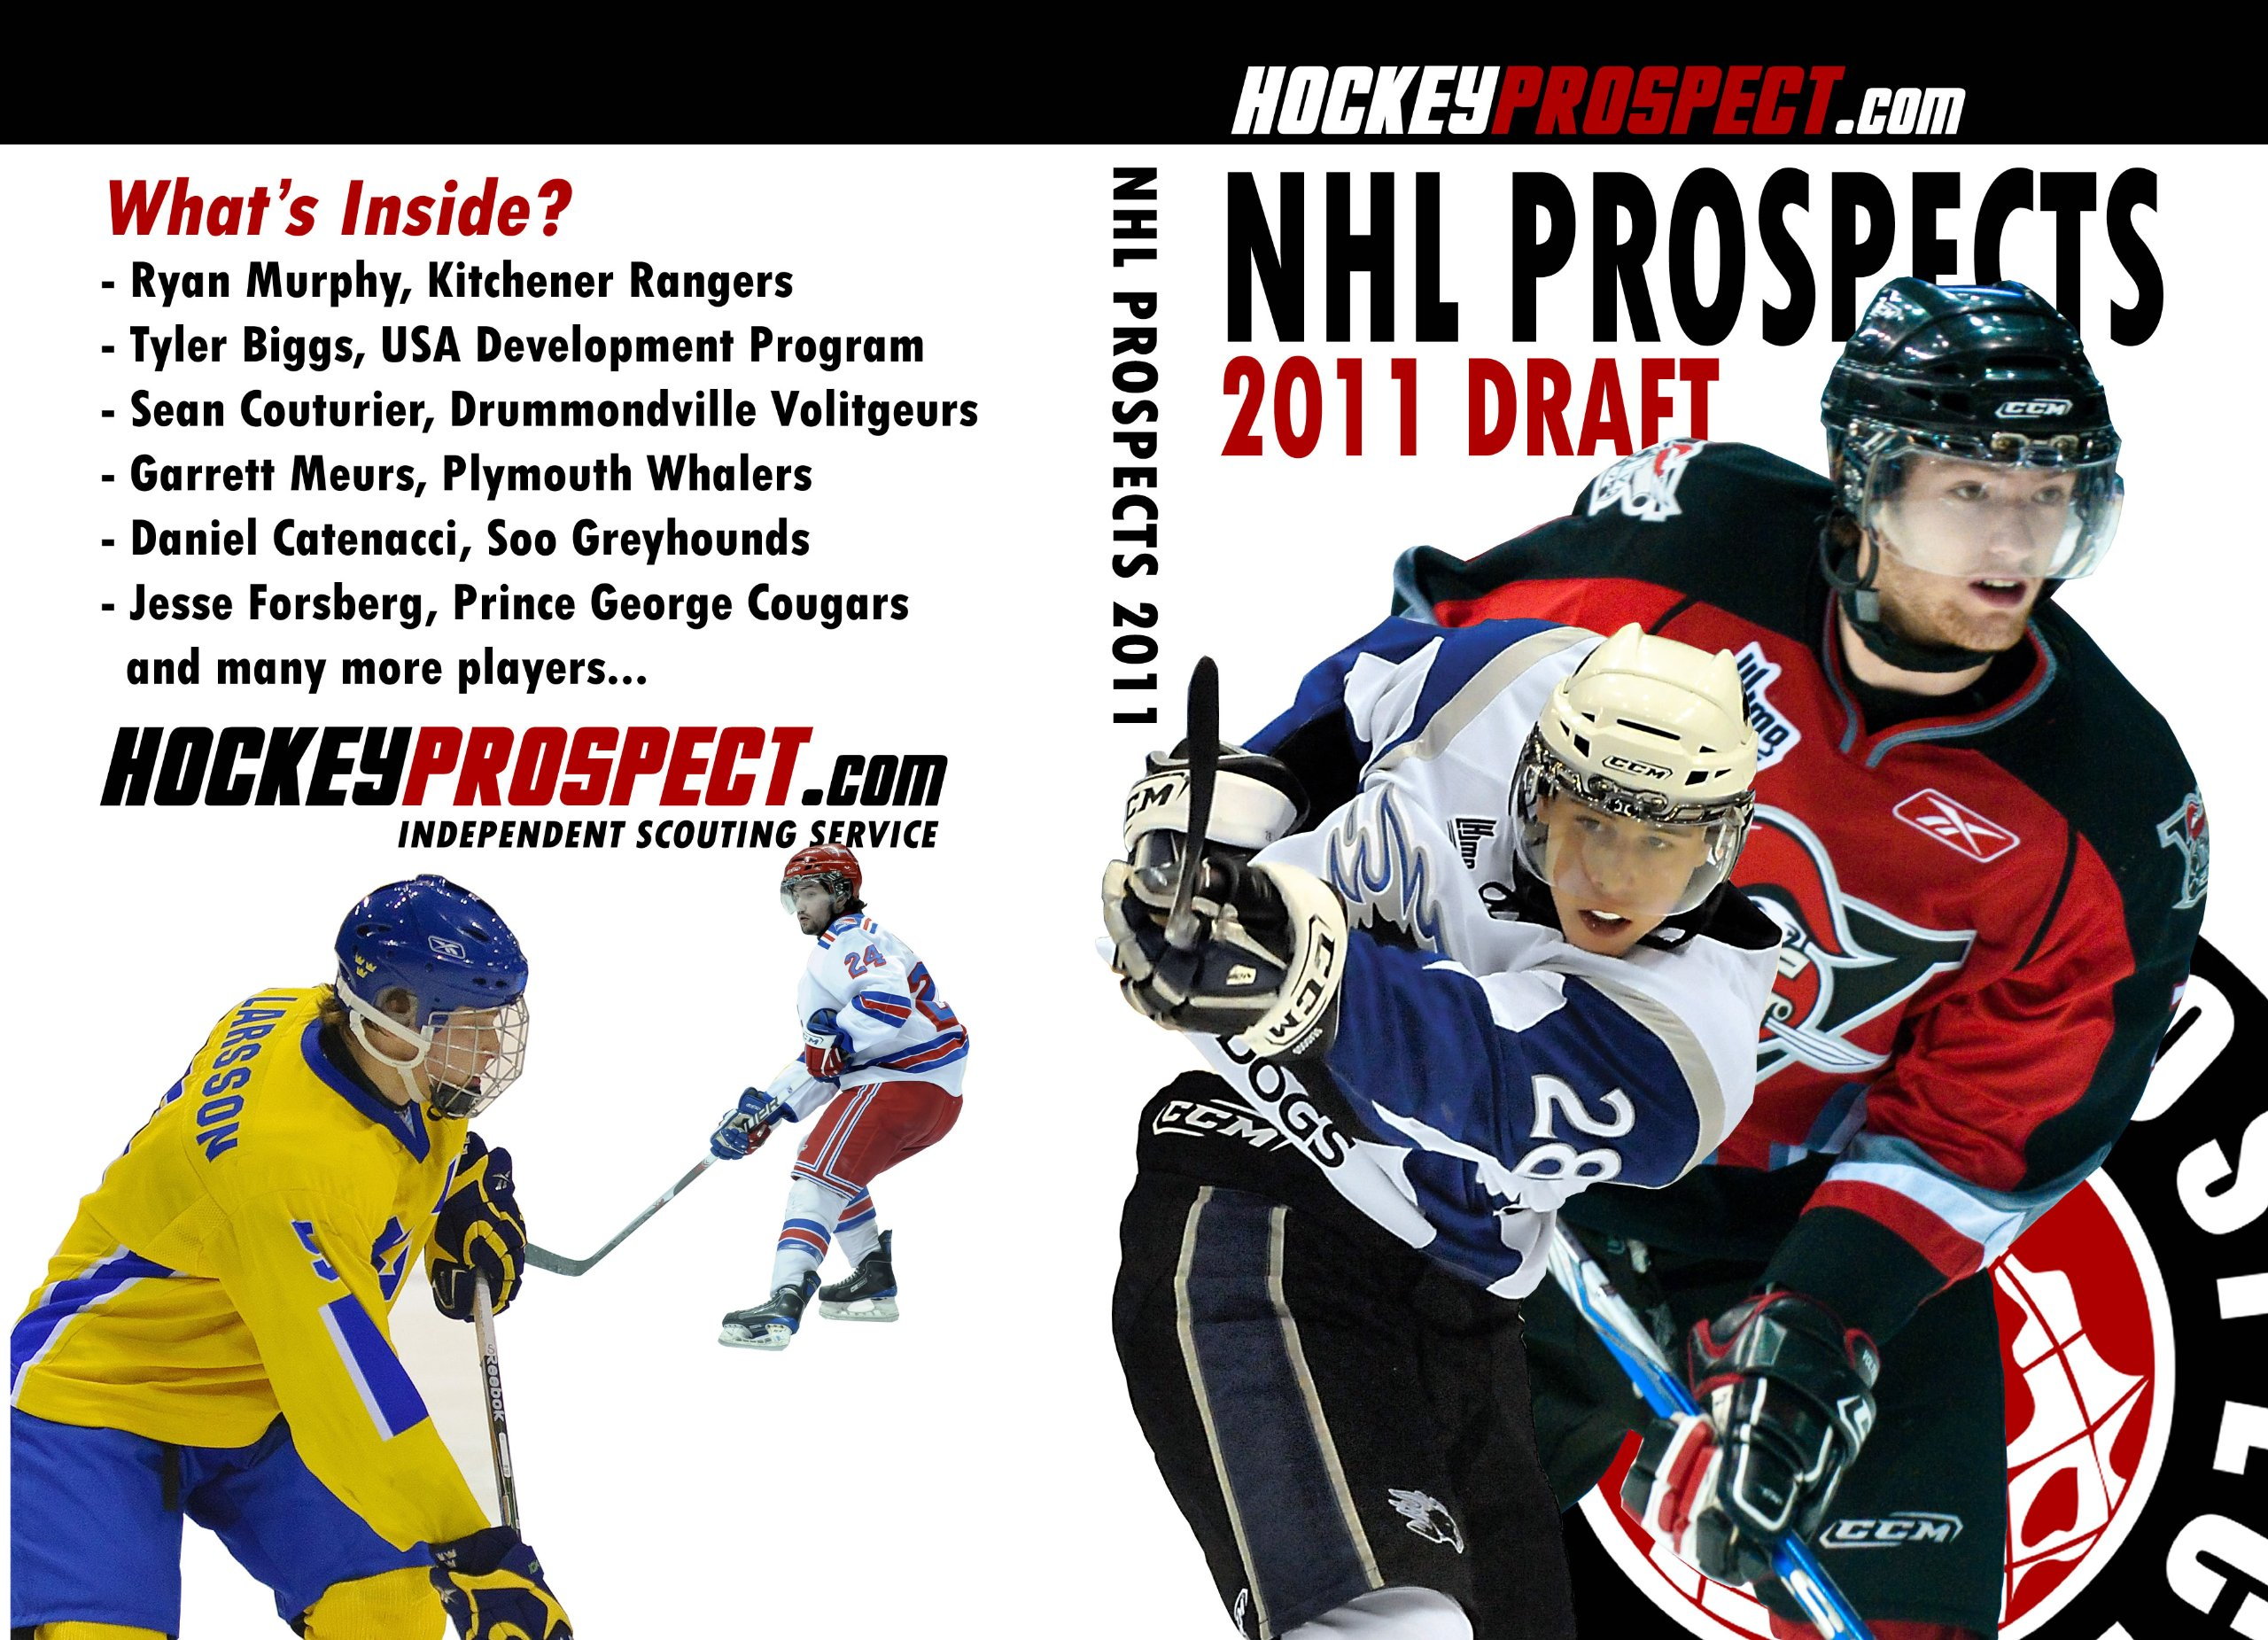 Download NHL Prospects 2011 Draft 